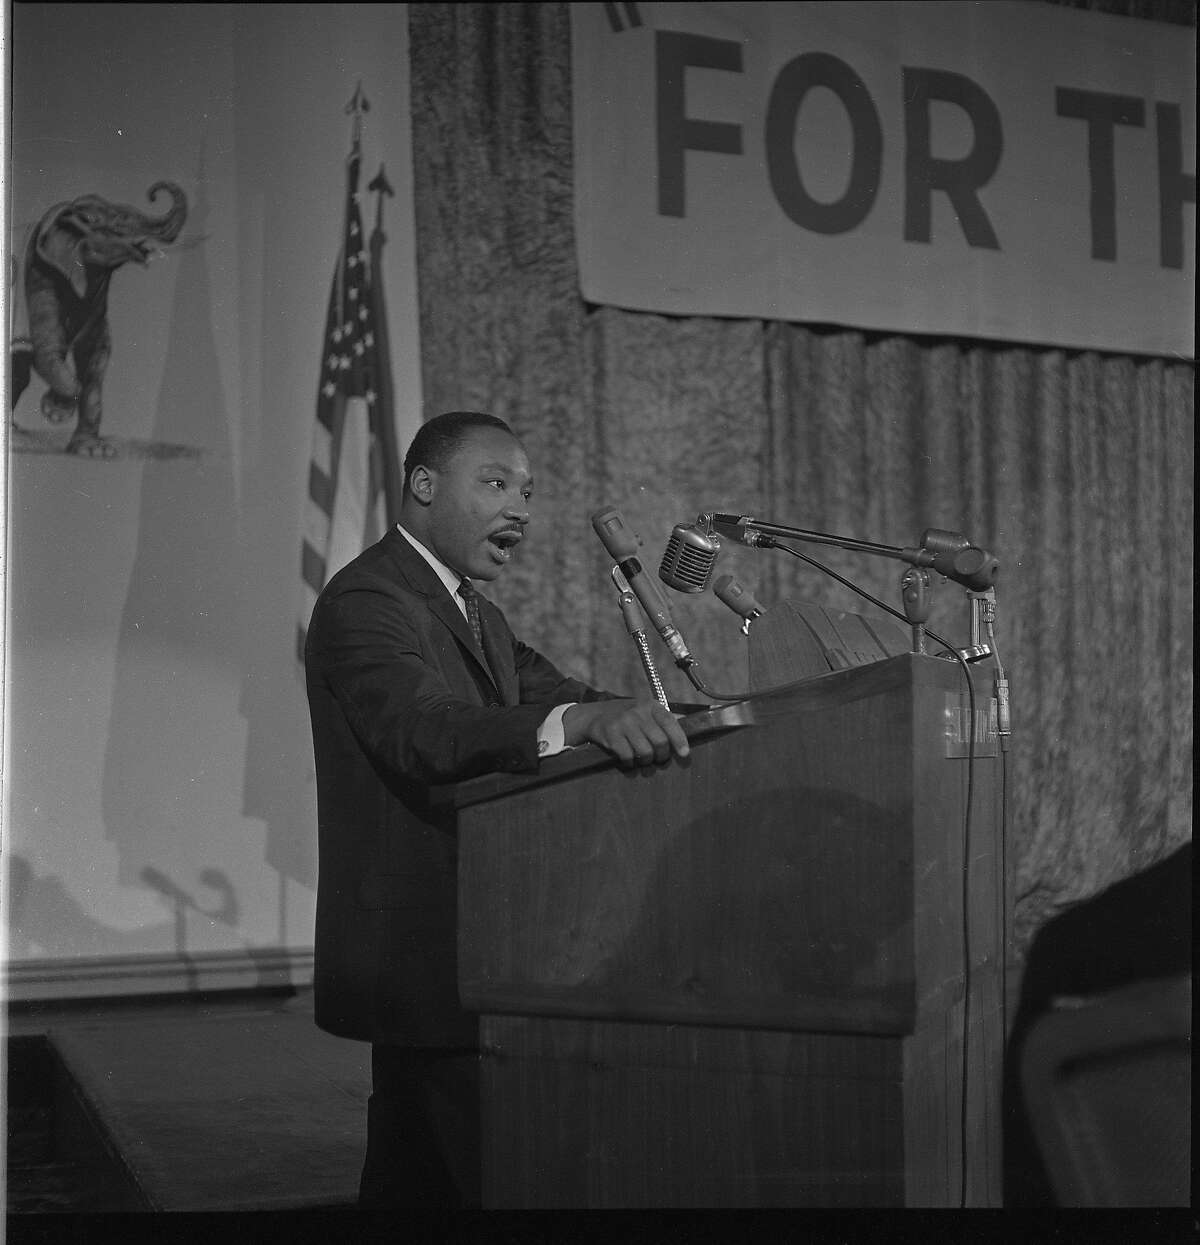 Martin Luther King addressing the Platform Committee for the Republican National Convention held in San Francisco 1964.